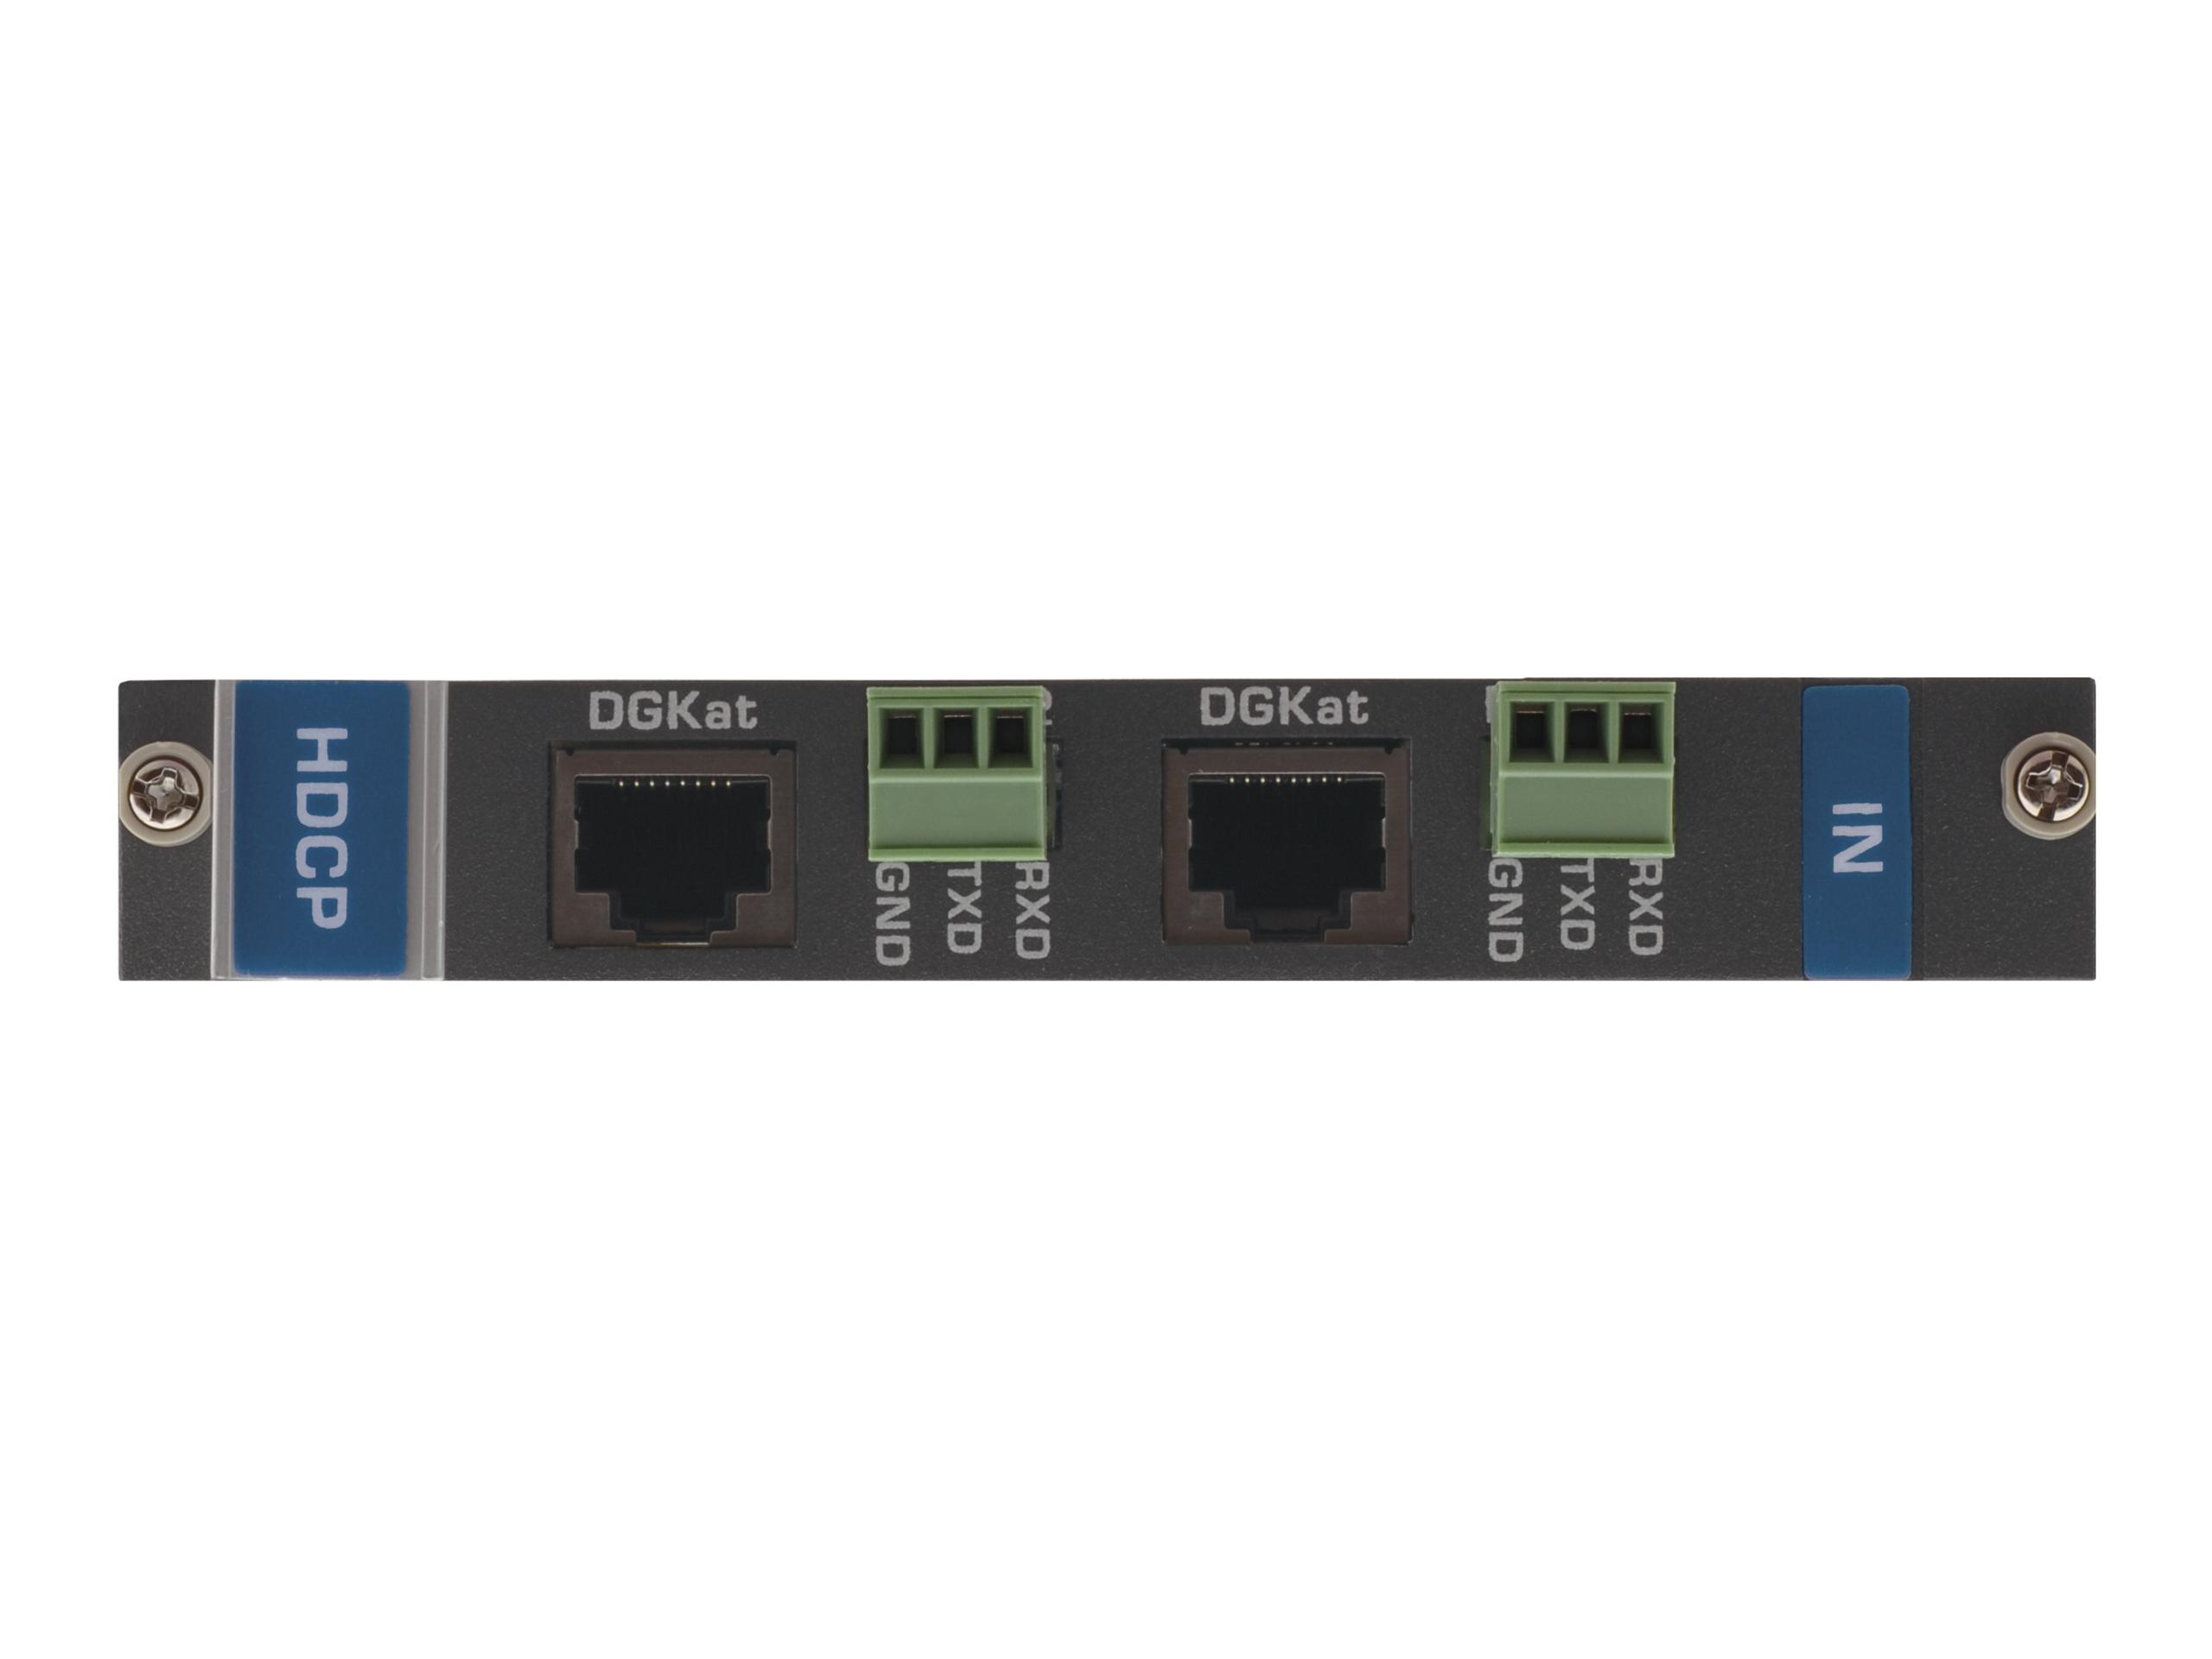 Kramer DGKat-IN2-F16 2-Input HDMI/RS-232 over DGKat Card (F-16)